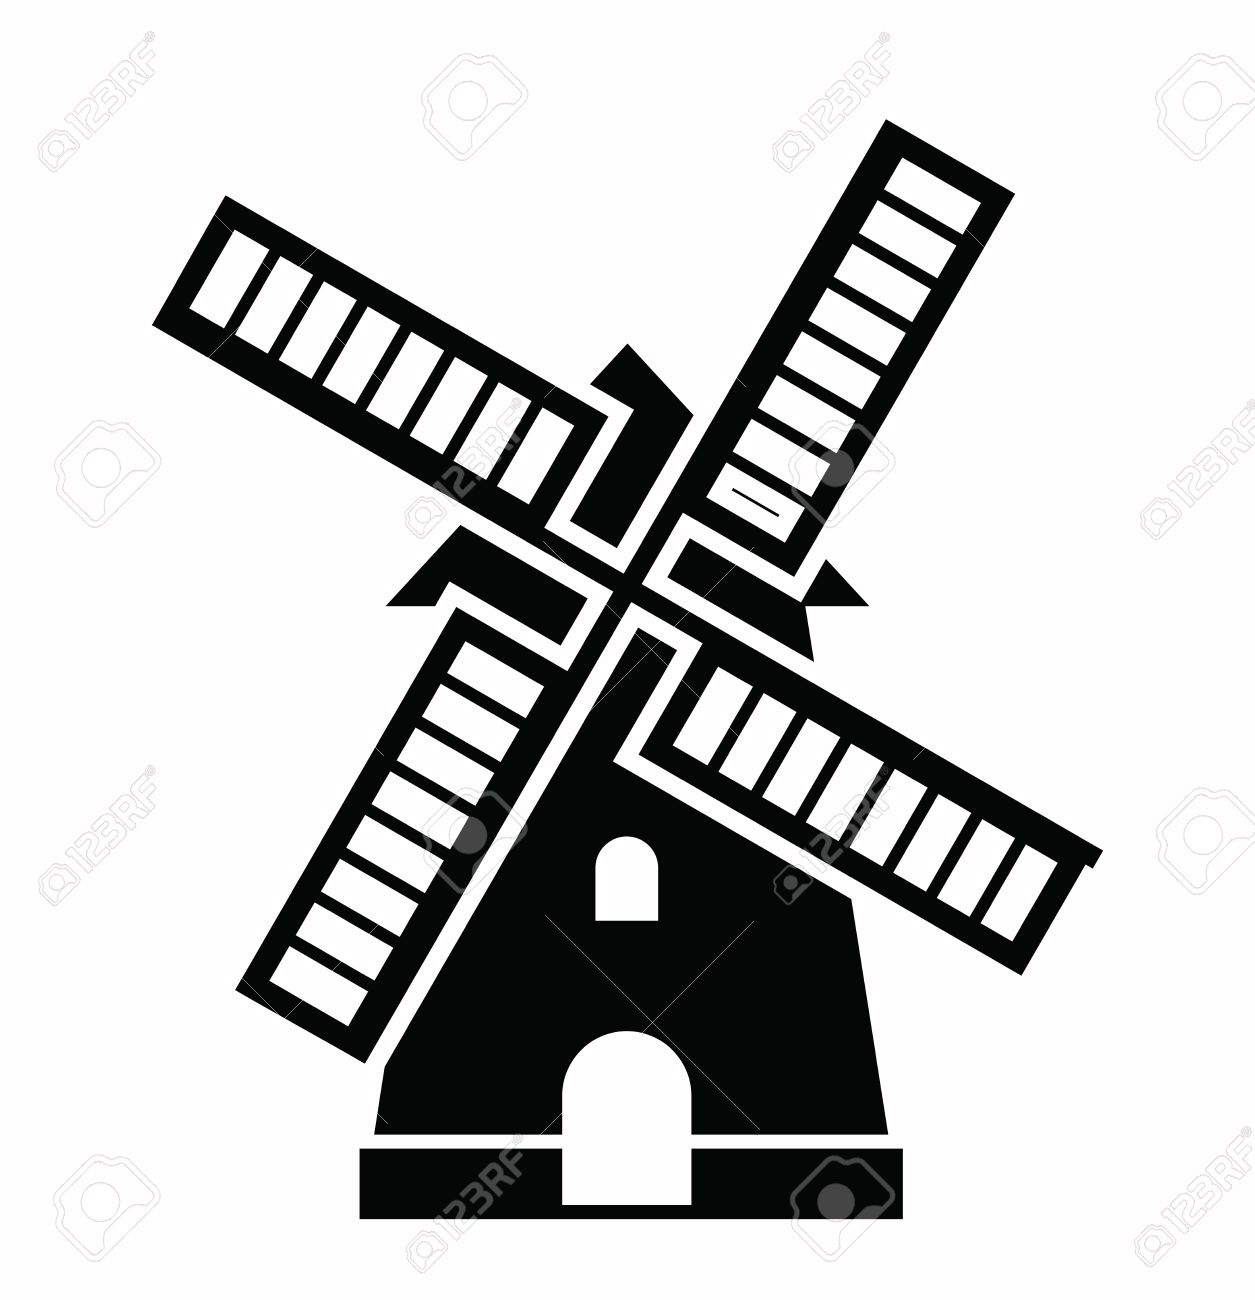 windmill icon royalty free cliparts vectors and stock illustration rh 123rf com vector windmill color windmill vector clipart